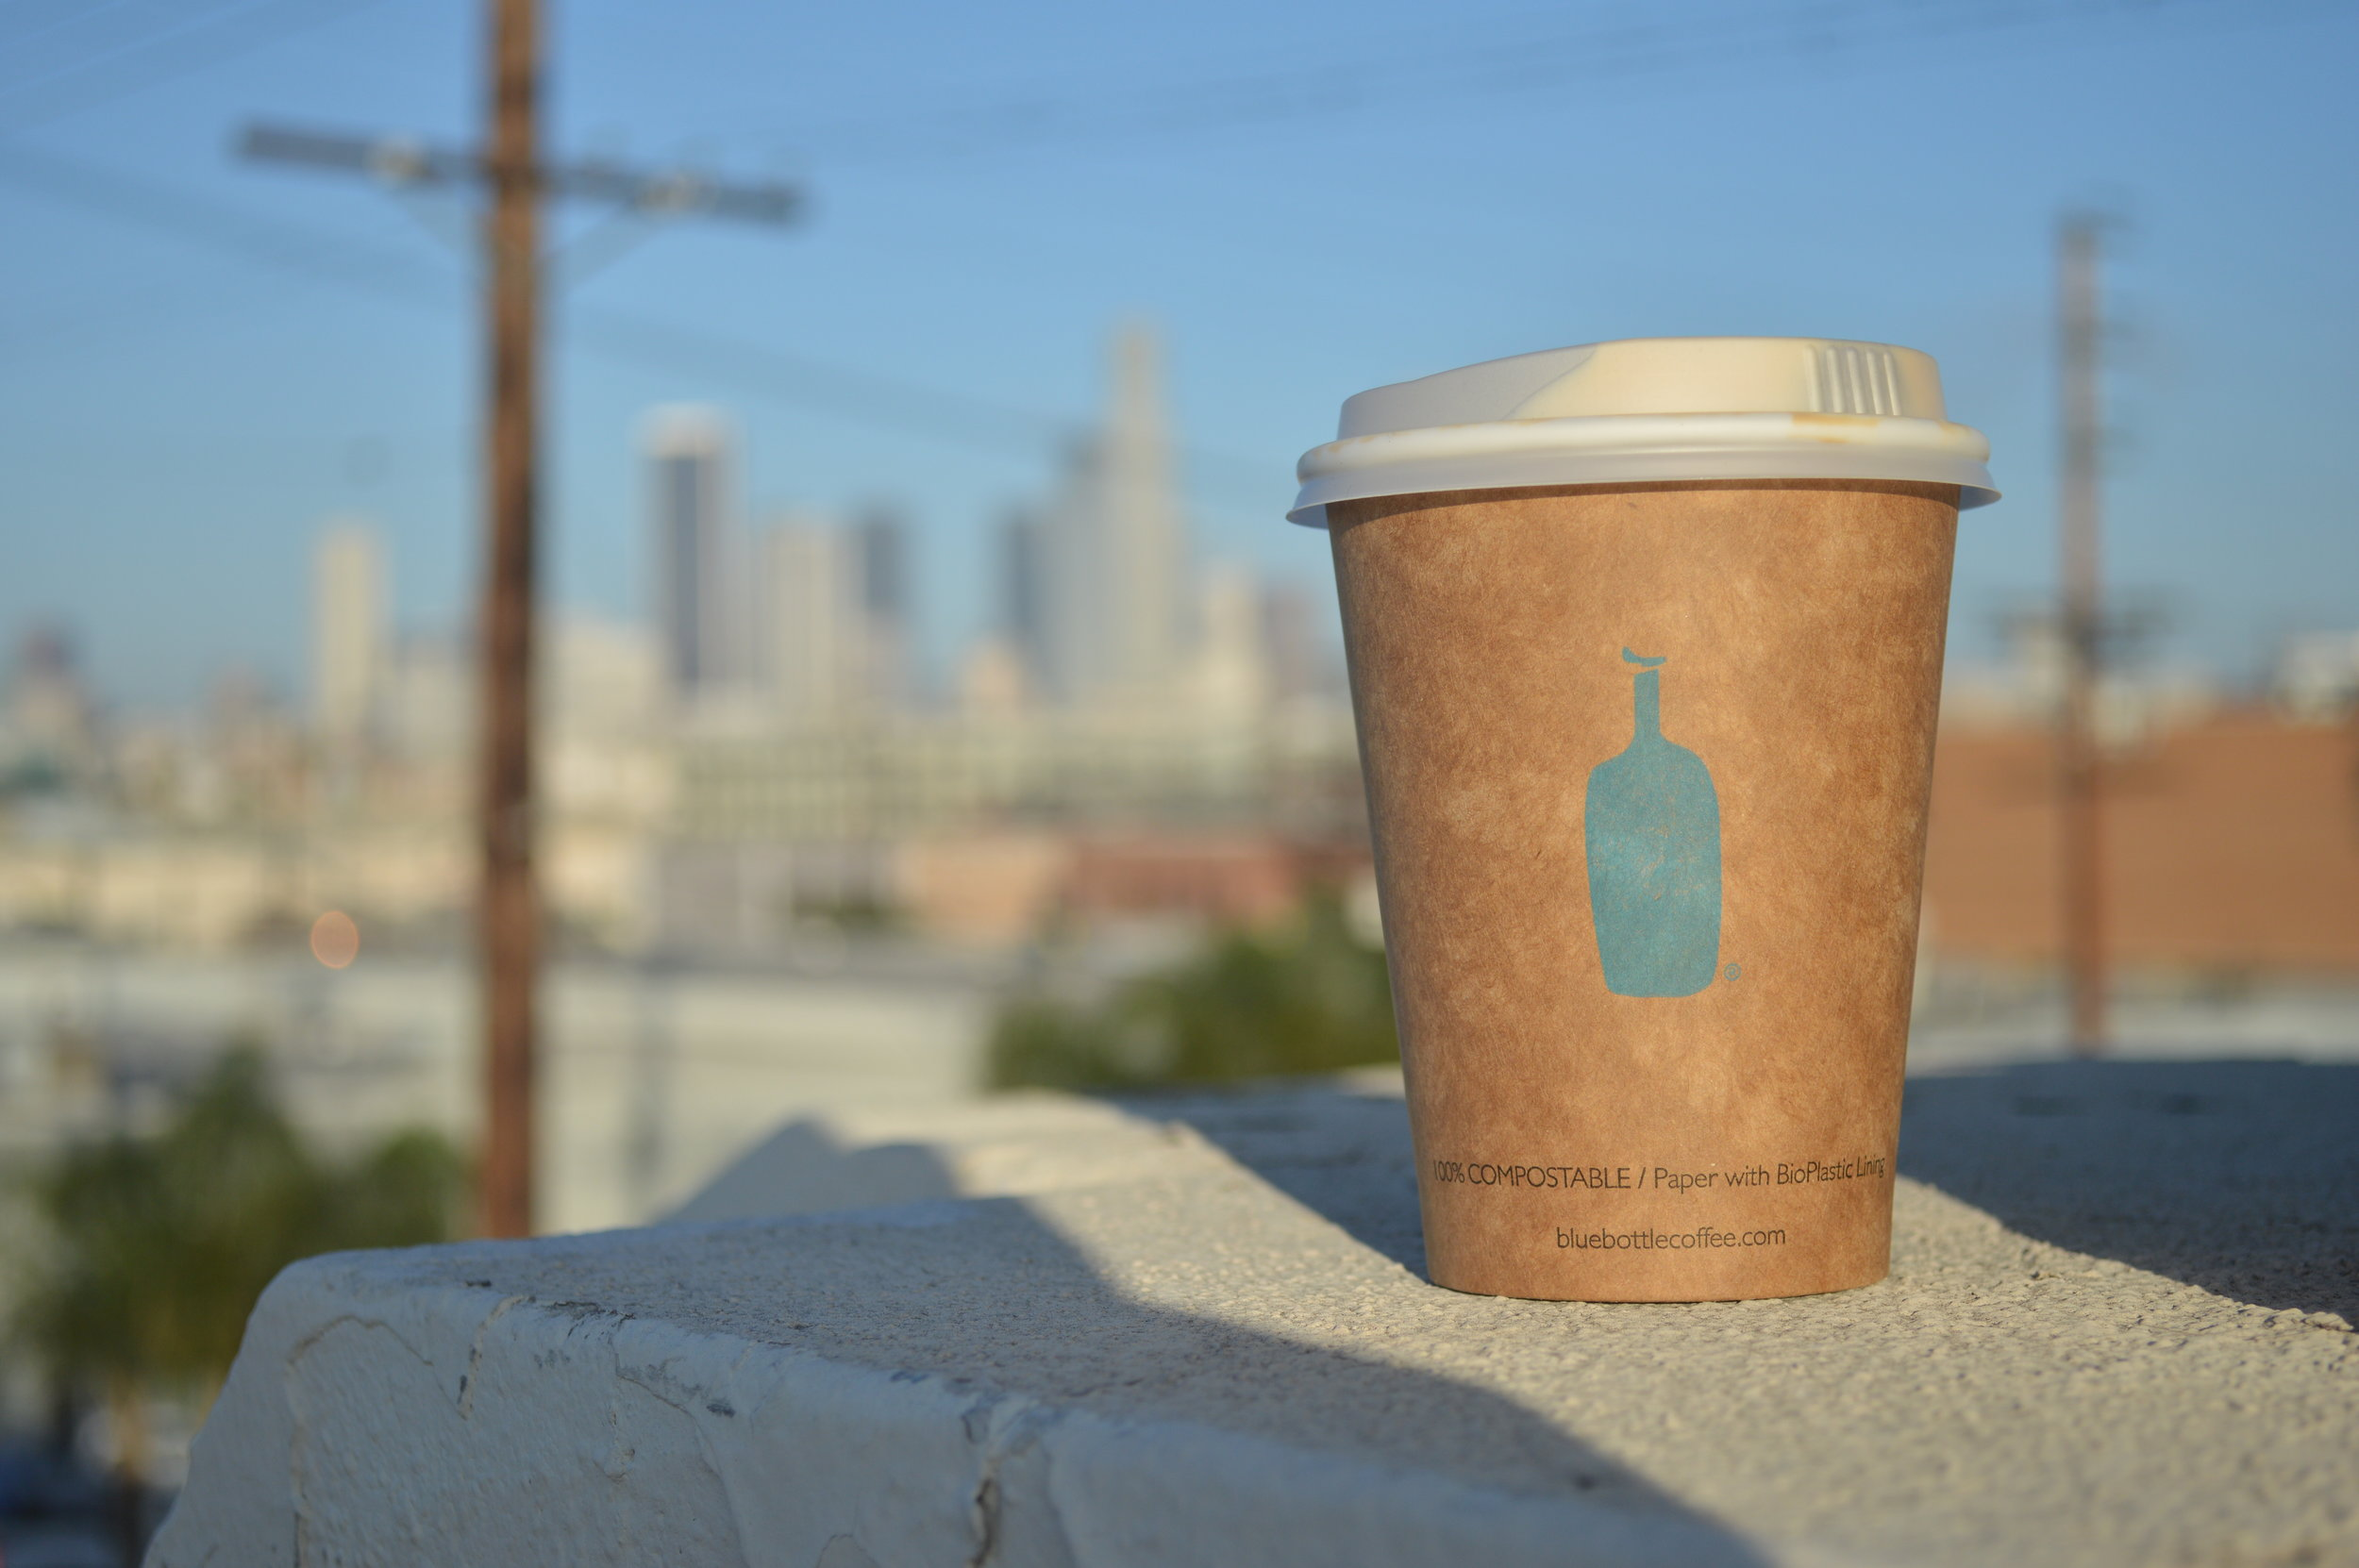 Blue Bottle Coffee / Los Angeles, CA / img cred: AJ Quon